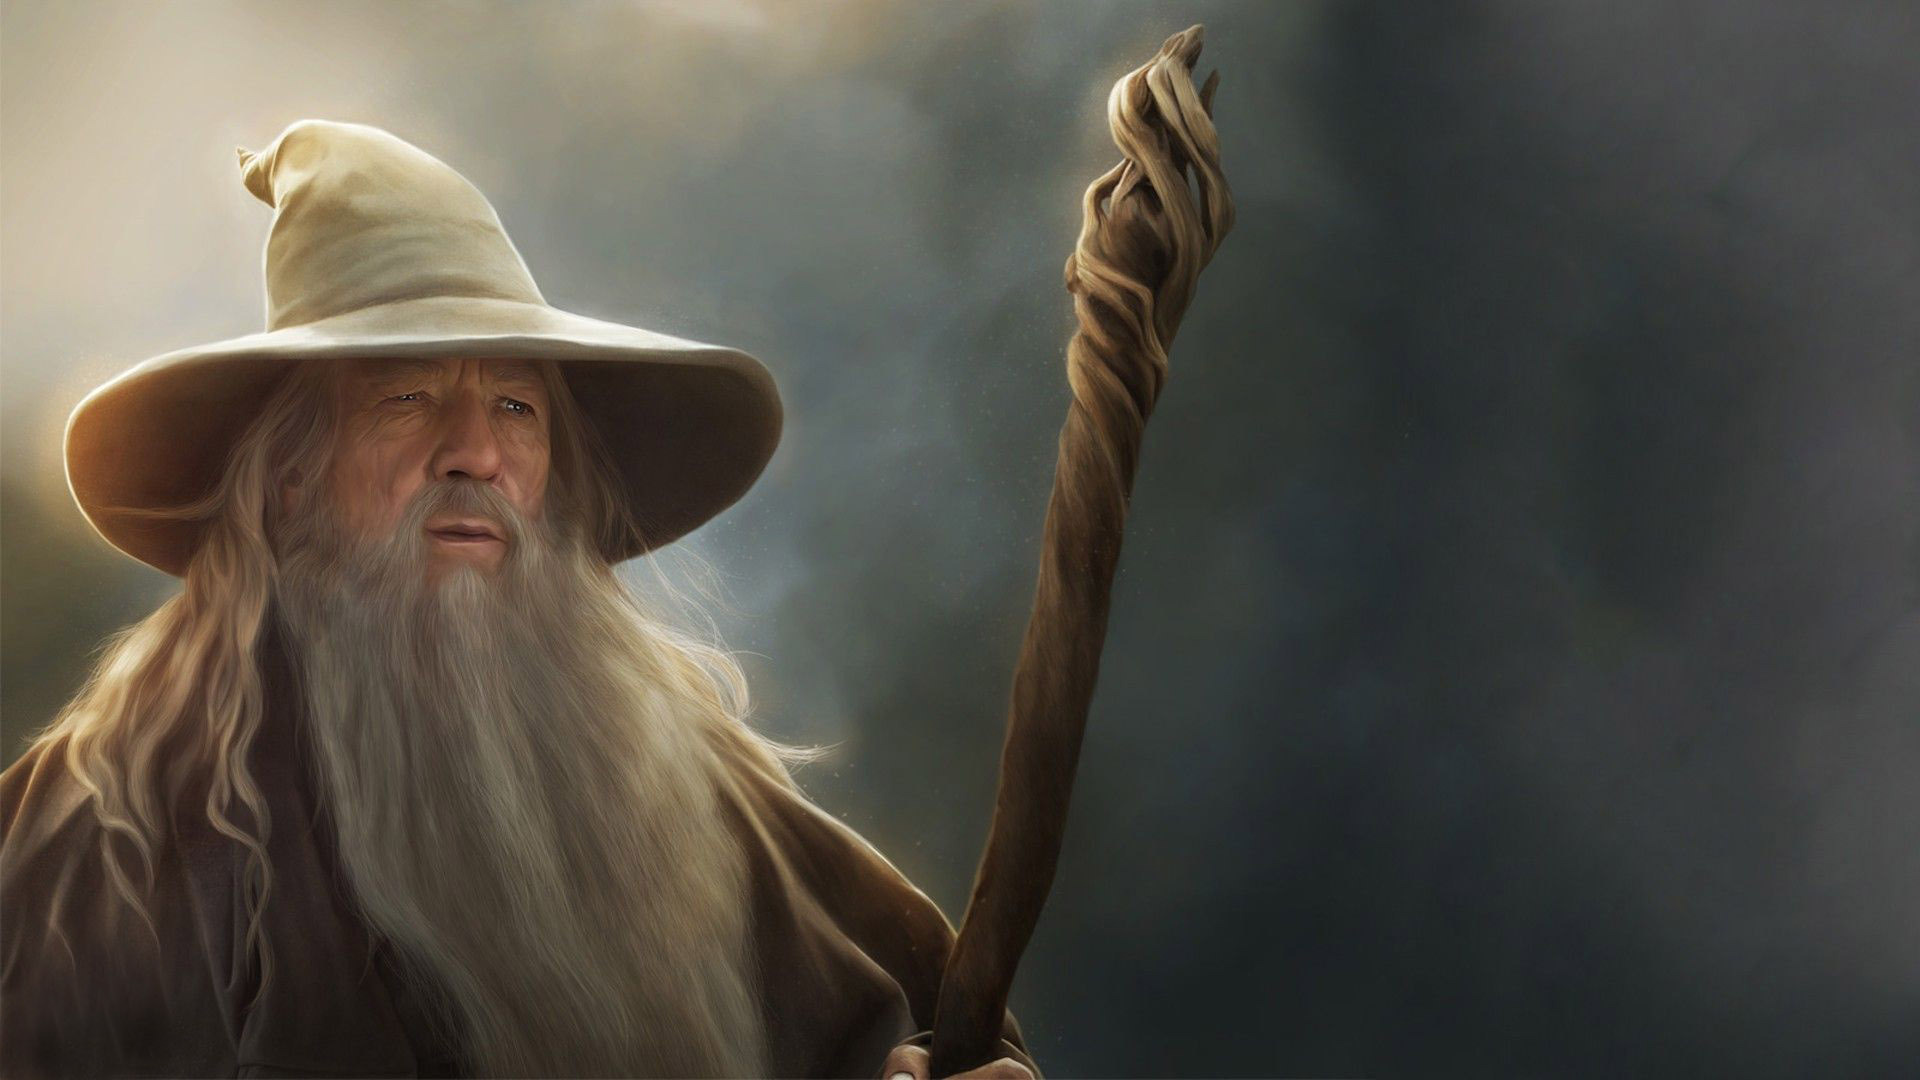 gandalf-the-lord-of-the-rings-wallpaper-6.jpg